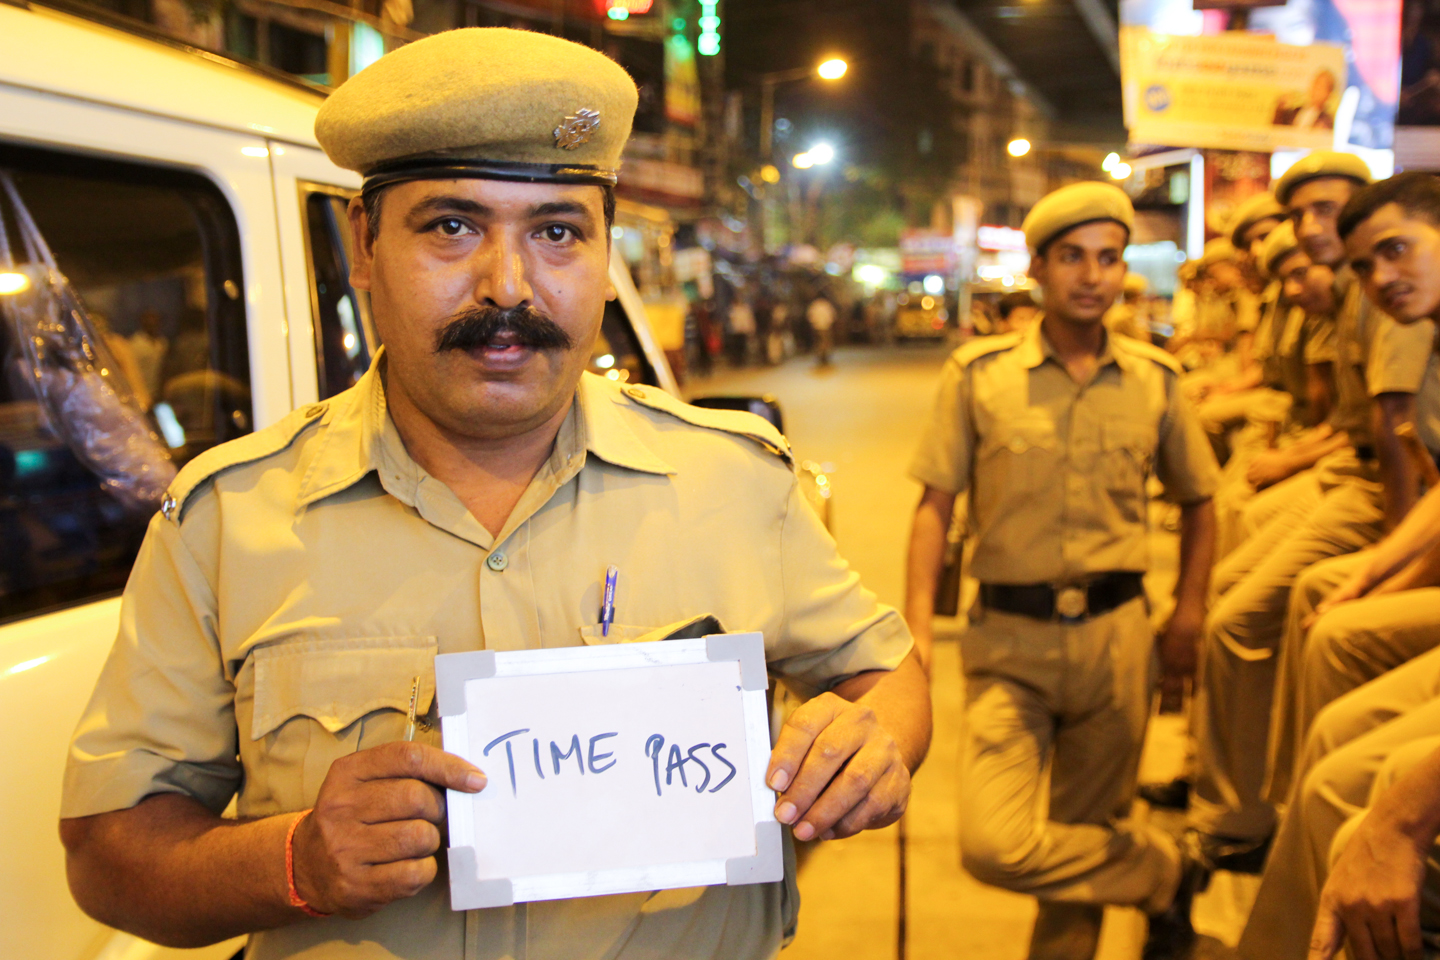 P.B. Shush is a driver for the Kolkata Police Force. While the rookies below him rarely take breaks, Shush makes sure to find time for his daily cuppa.